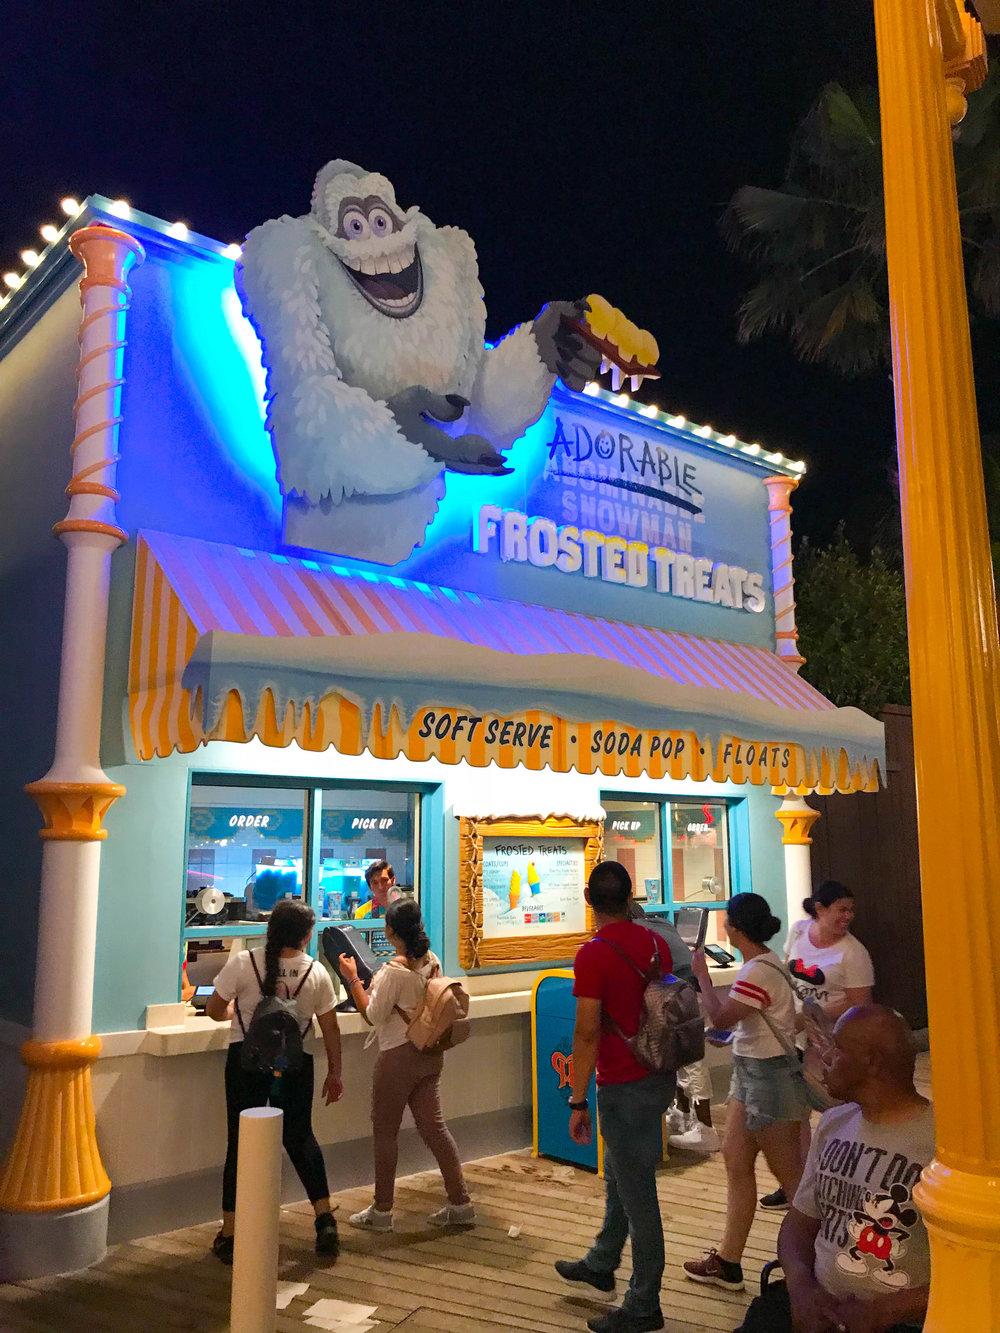 Adorable Snowman Frosted Treats on Pixar Pier - After